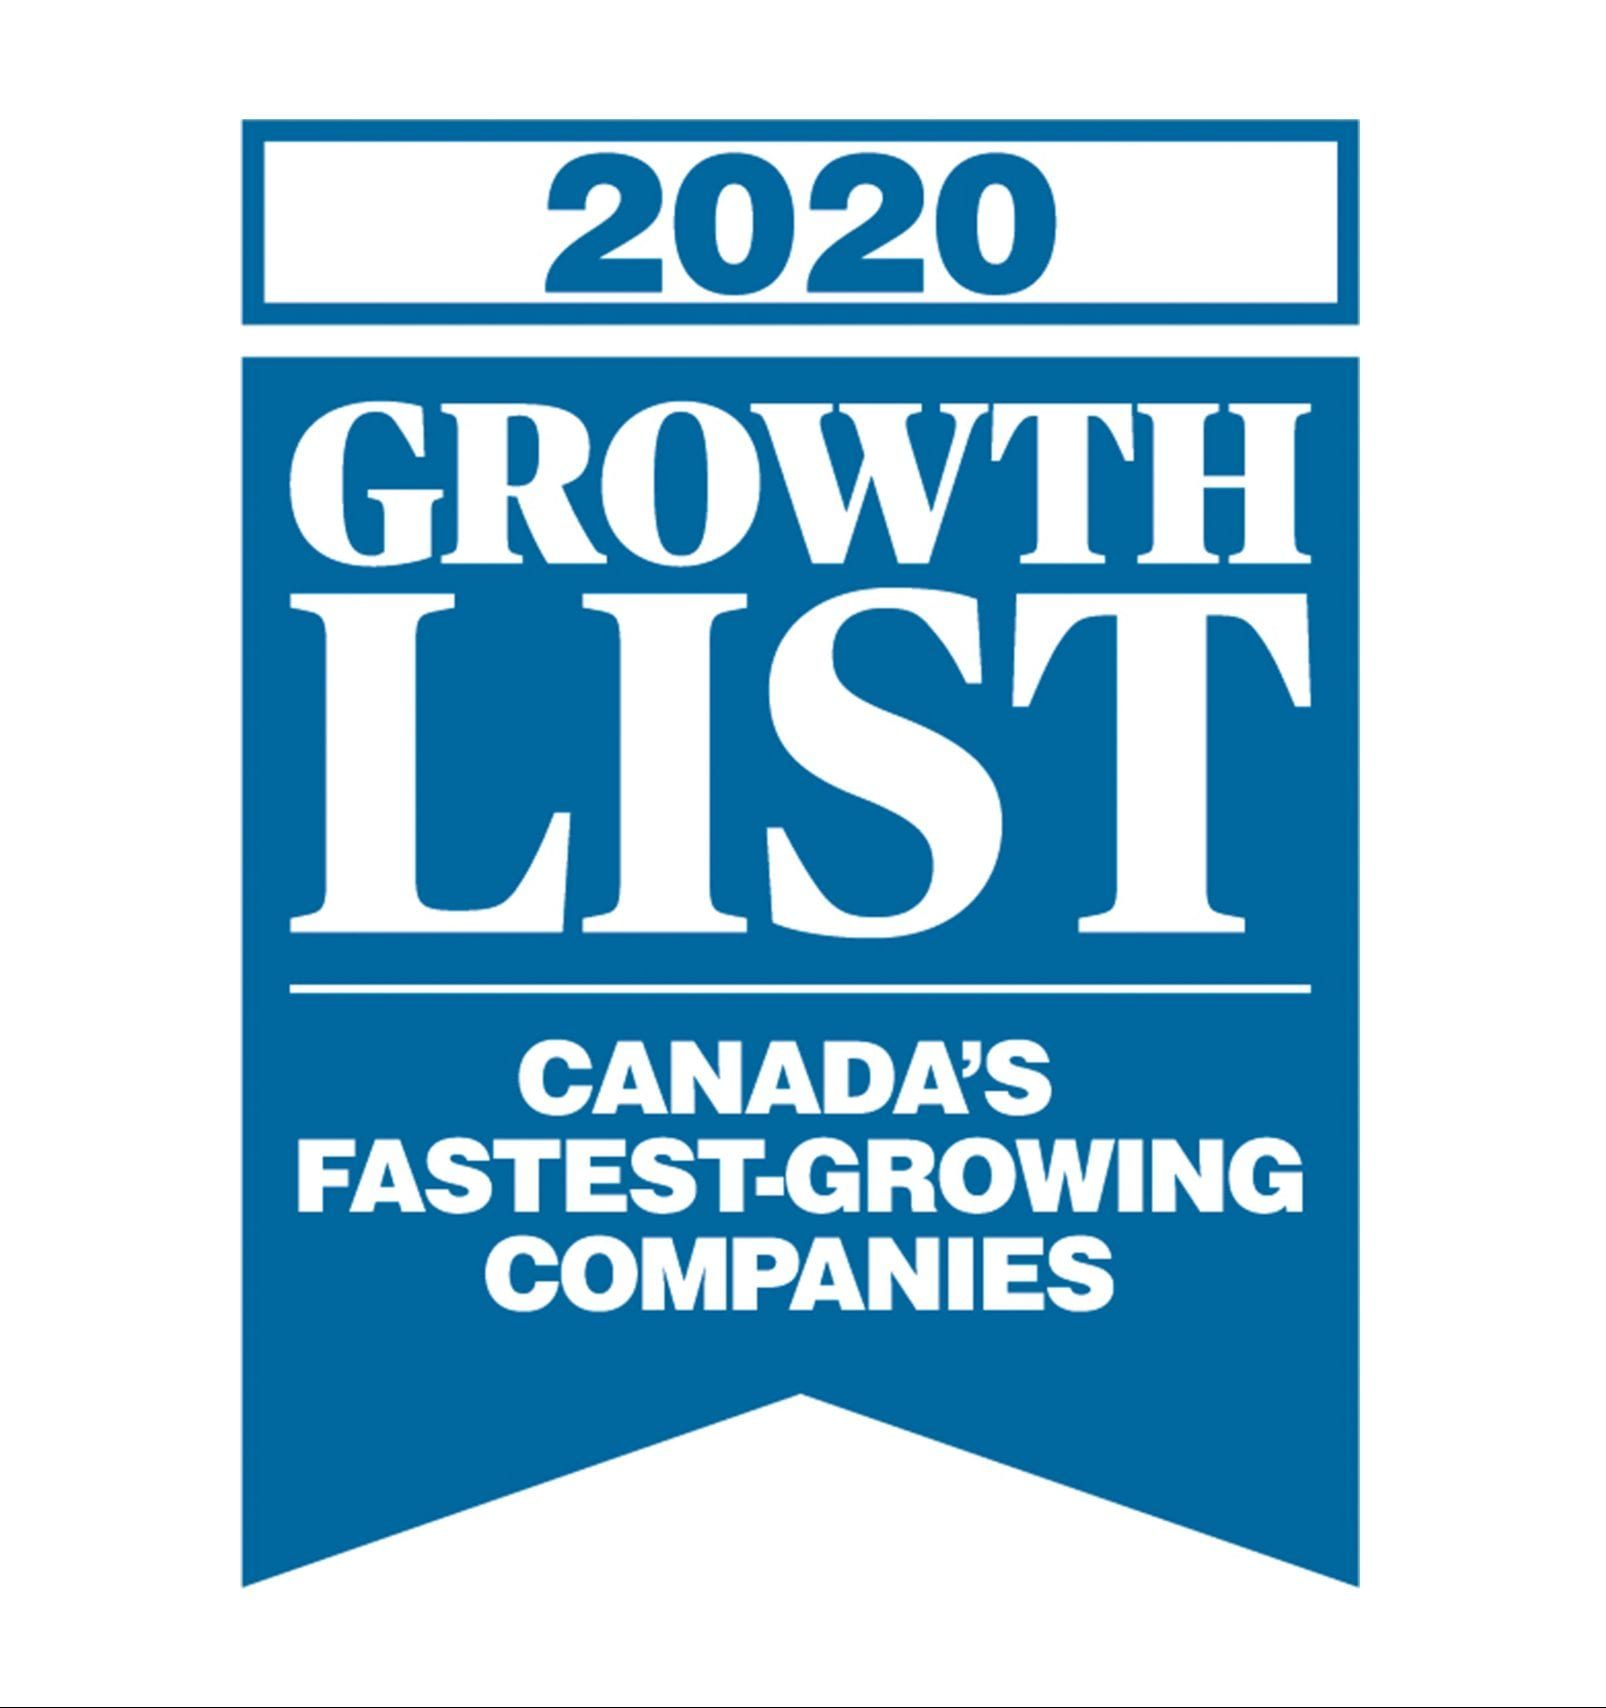 2020 Growth List